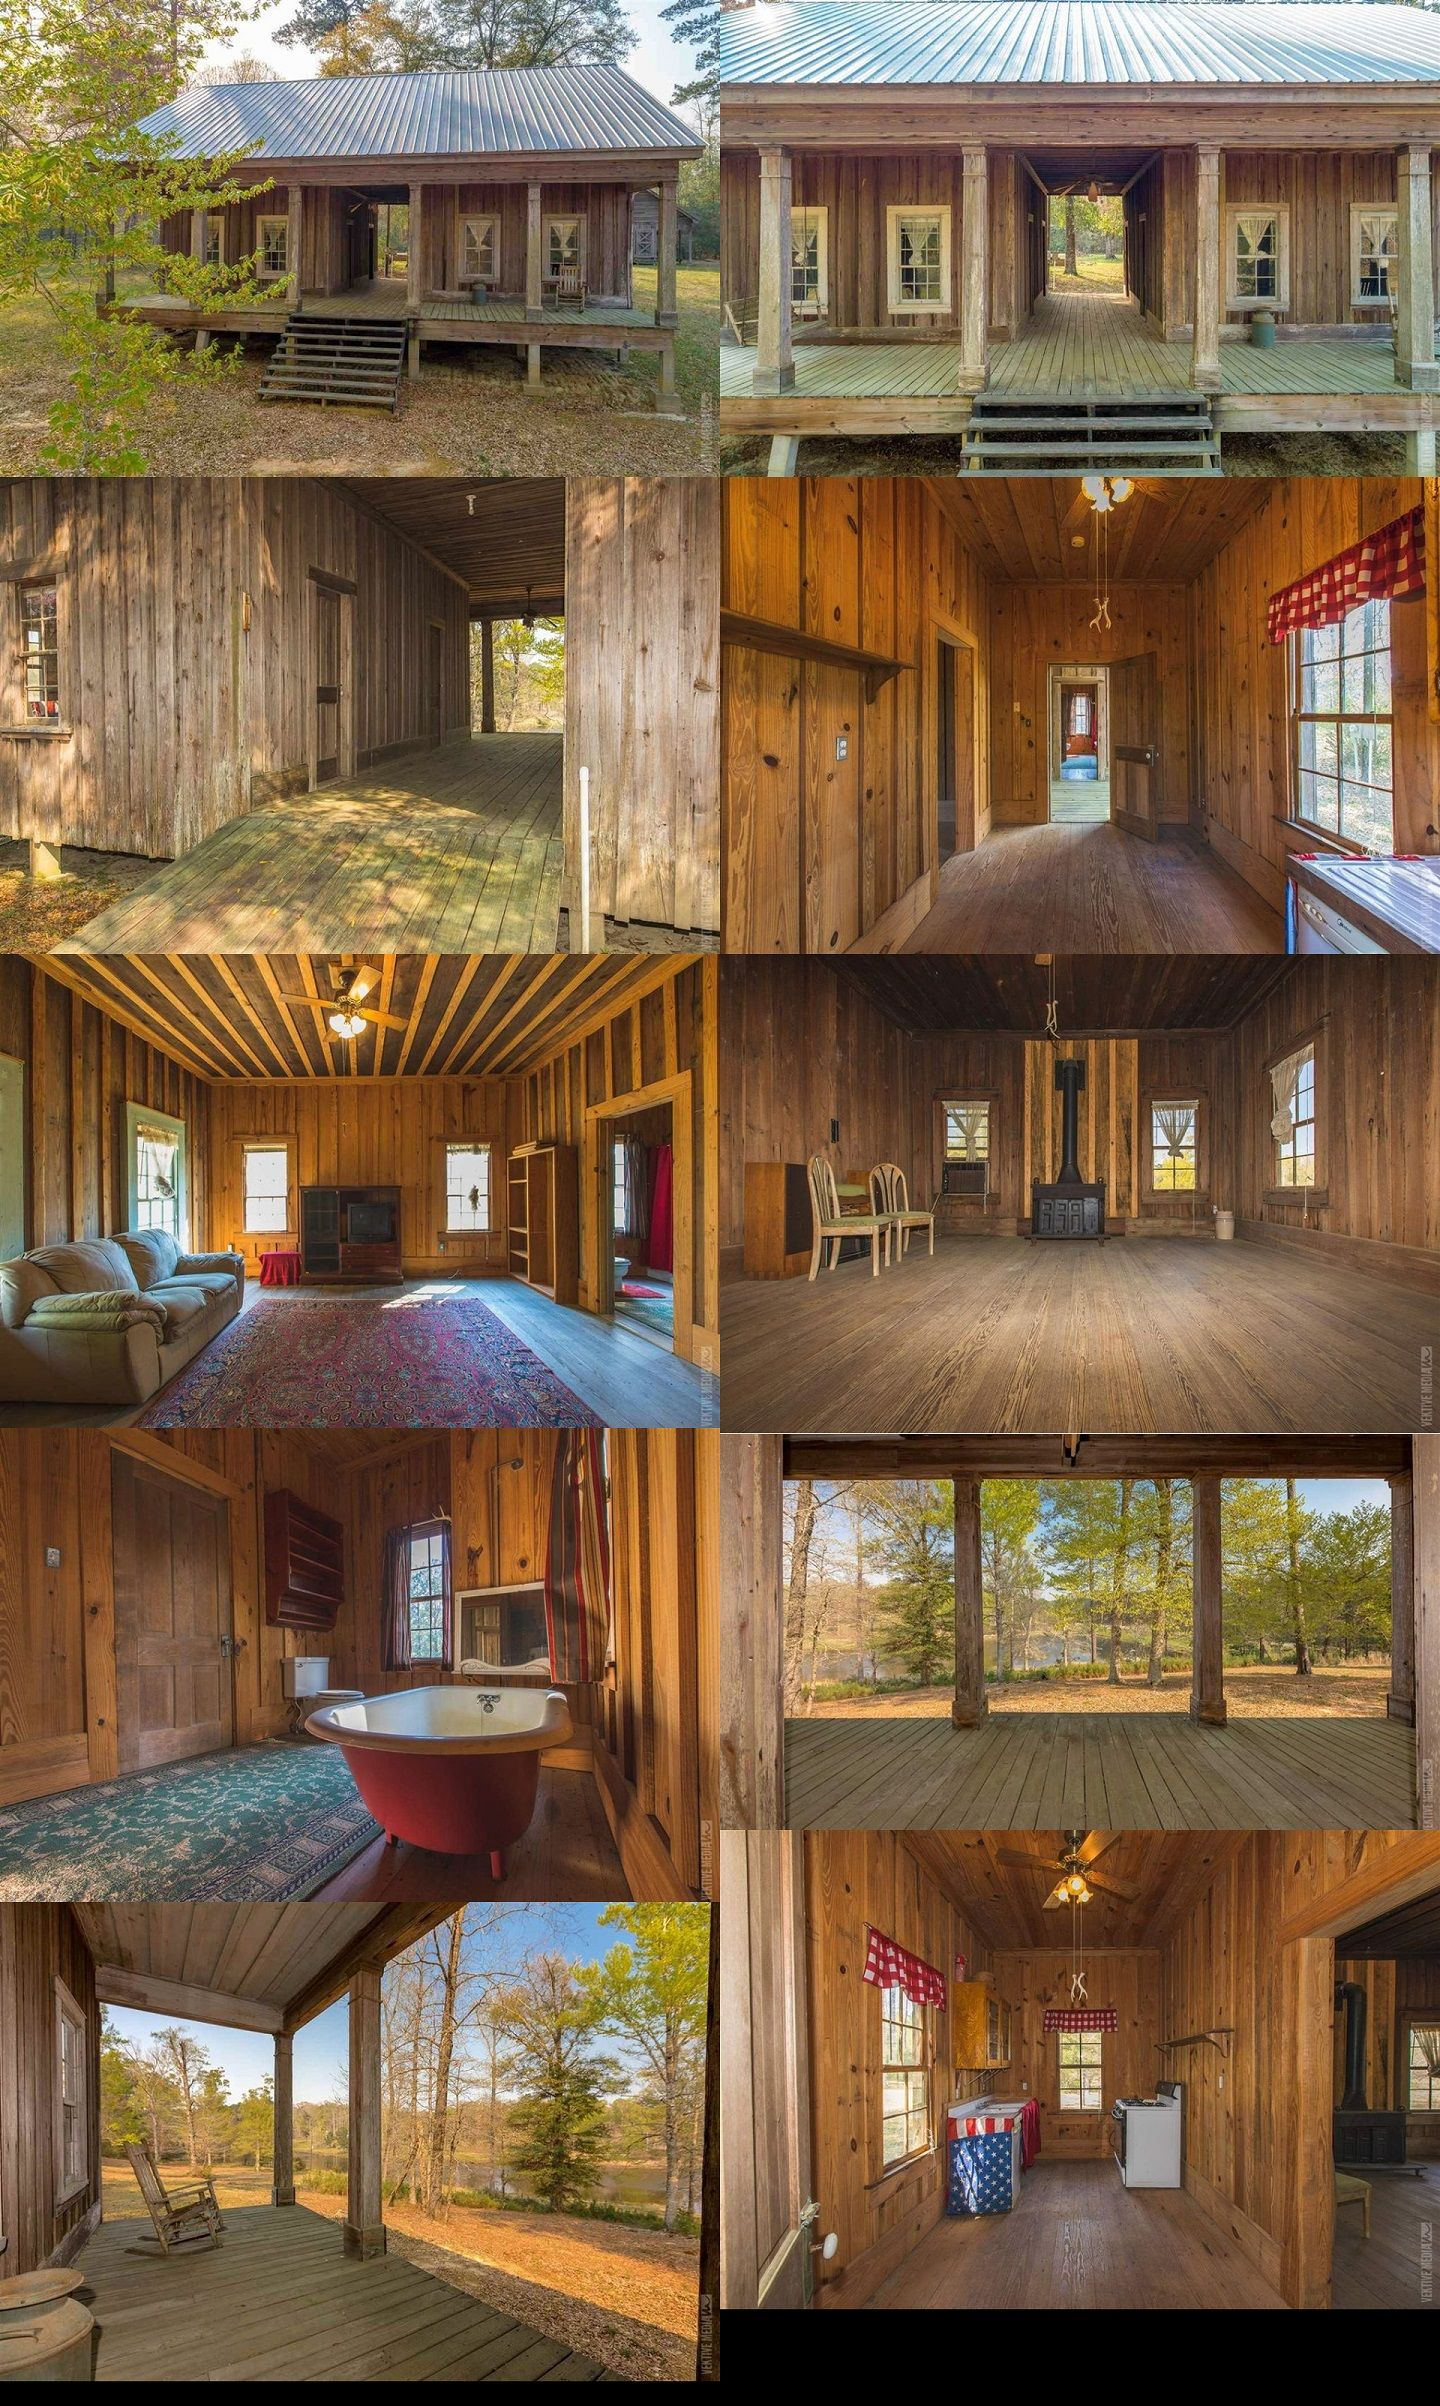 This old cabin style creates a breeze to cool the rooms